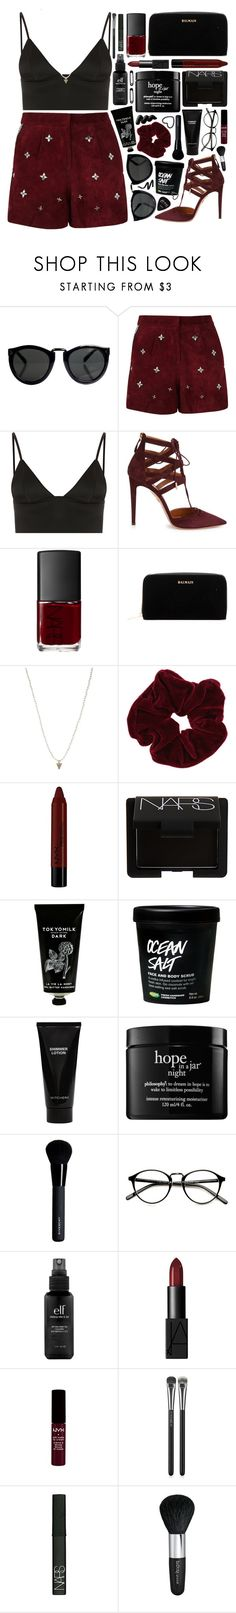 """""""Outfit 216"""" by holass ❤ liked on Polyvore featuring T By Alexander Wang, Aquazzura, NARS Cosmetics, Balmain, ASOS, Miss Selfridge, NYX, TokyoMilk, Witchery and philosophy"""